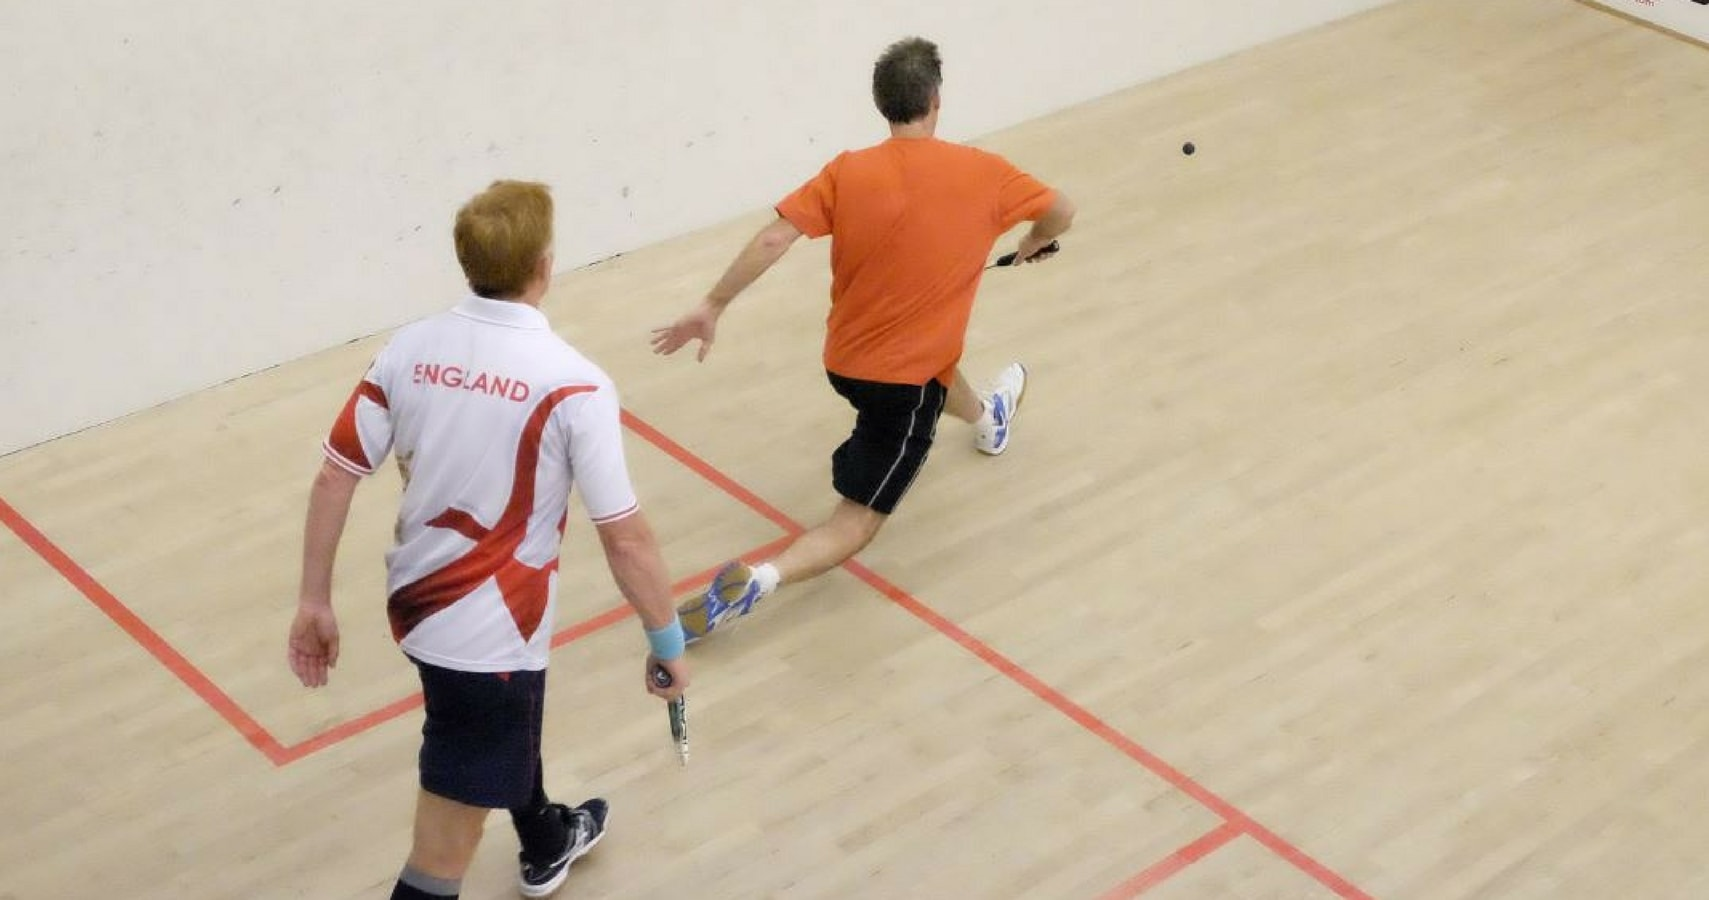 Mark Woodliffe defeated Trevor Wilkinson in the final of the MO55 event